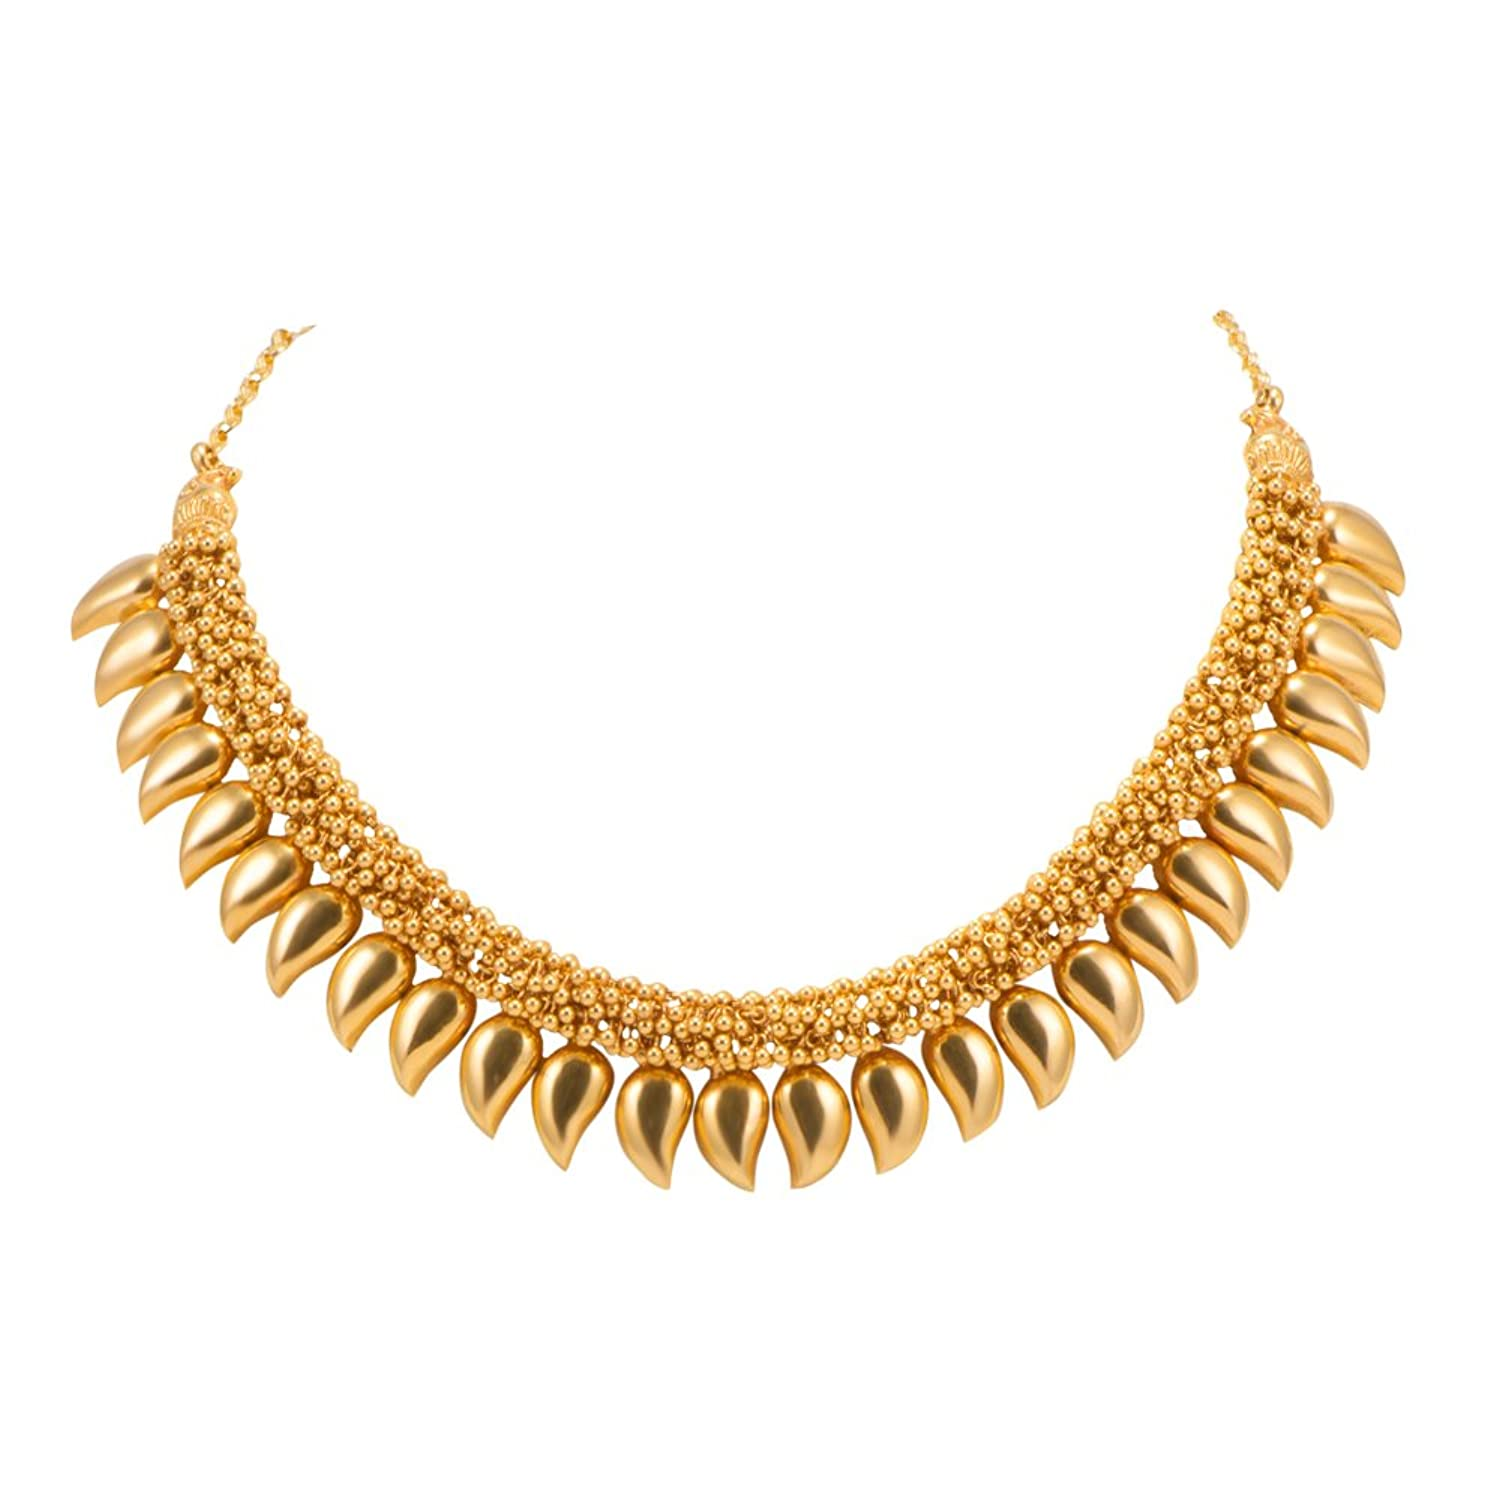 Buy Joyalukkas 22k Gold Necklace Online at Low Prices in India ...